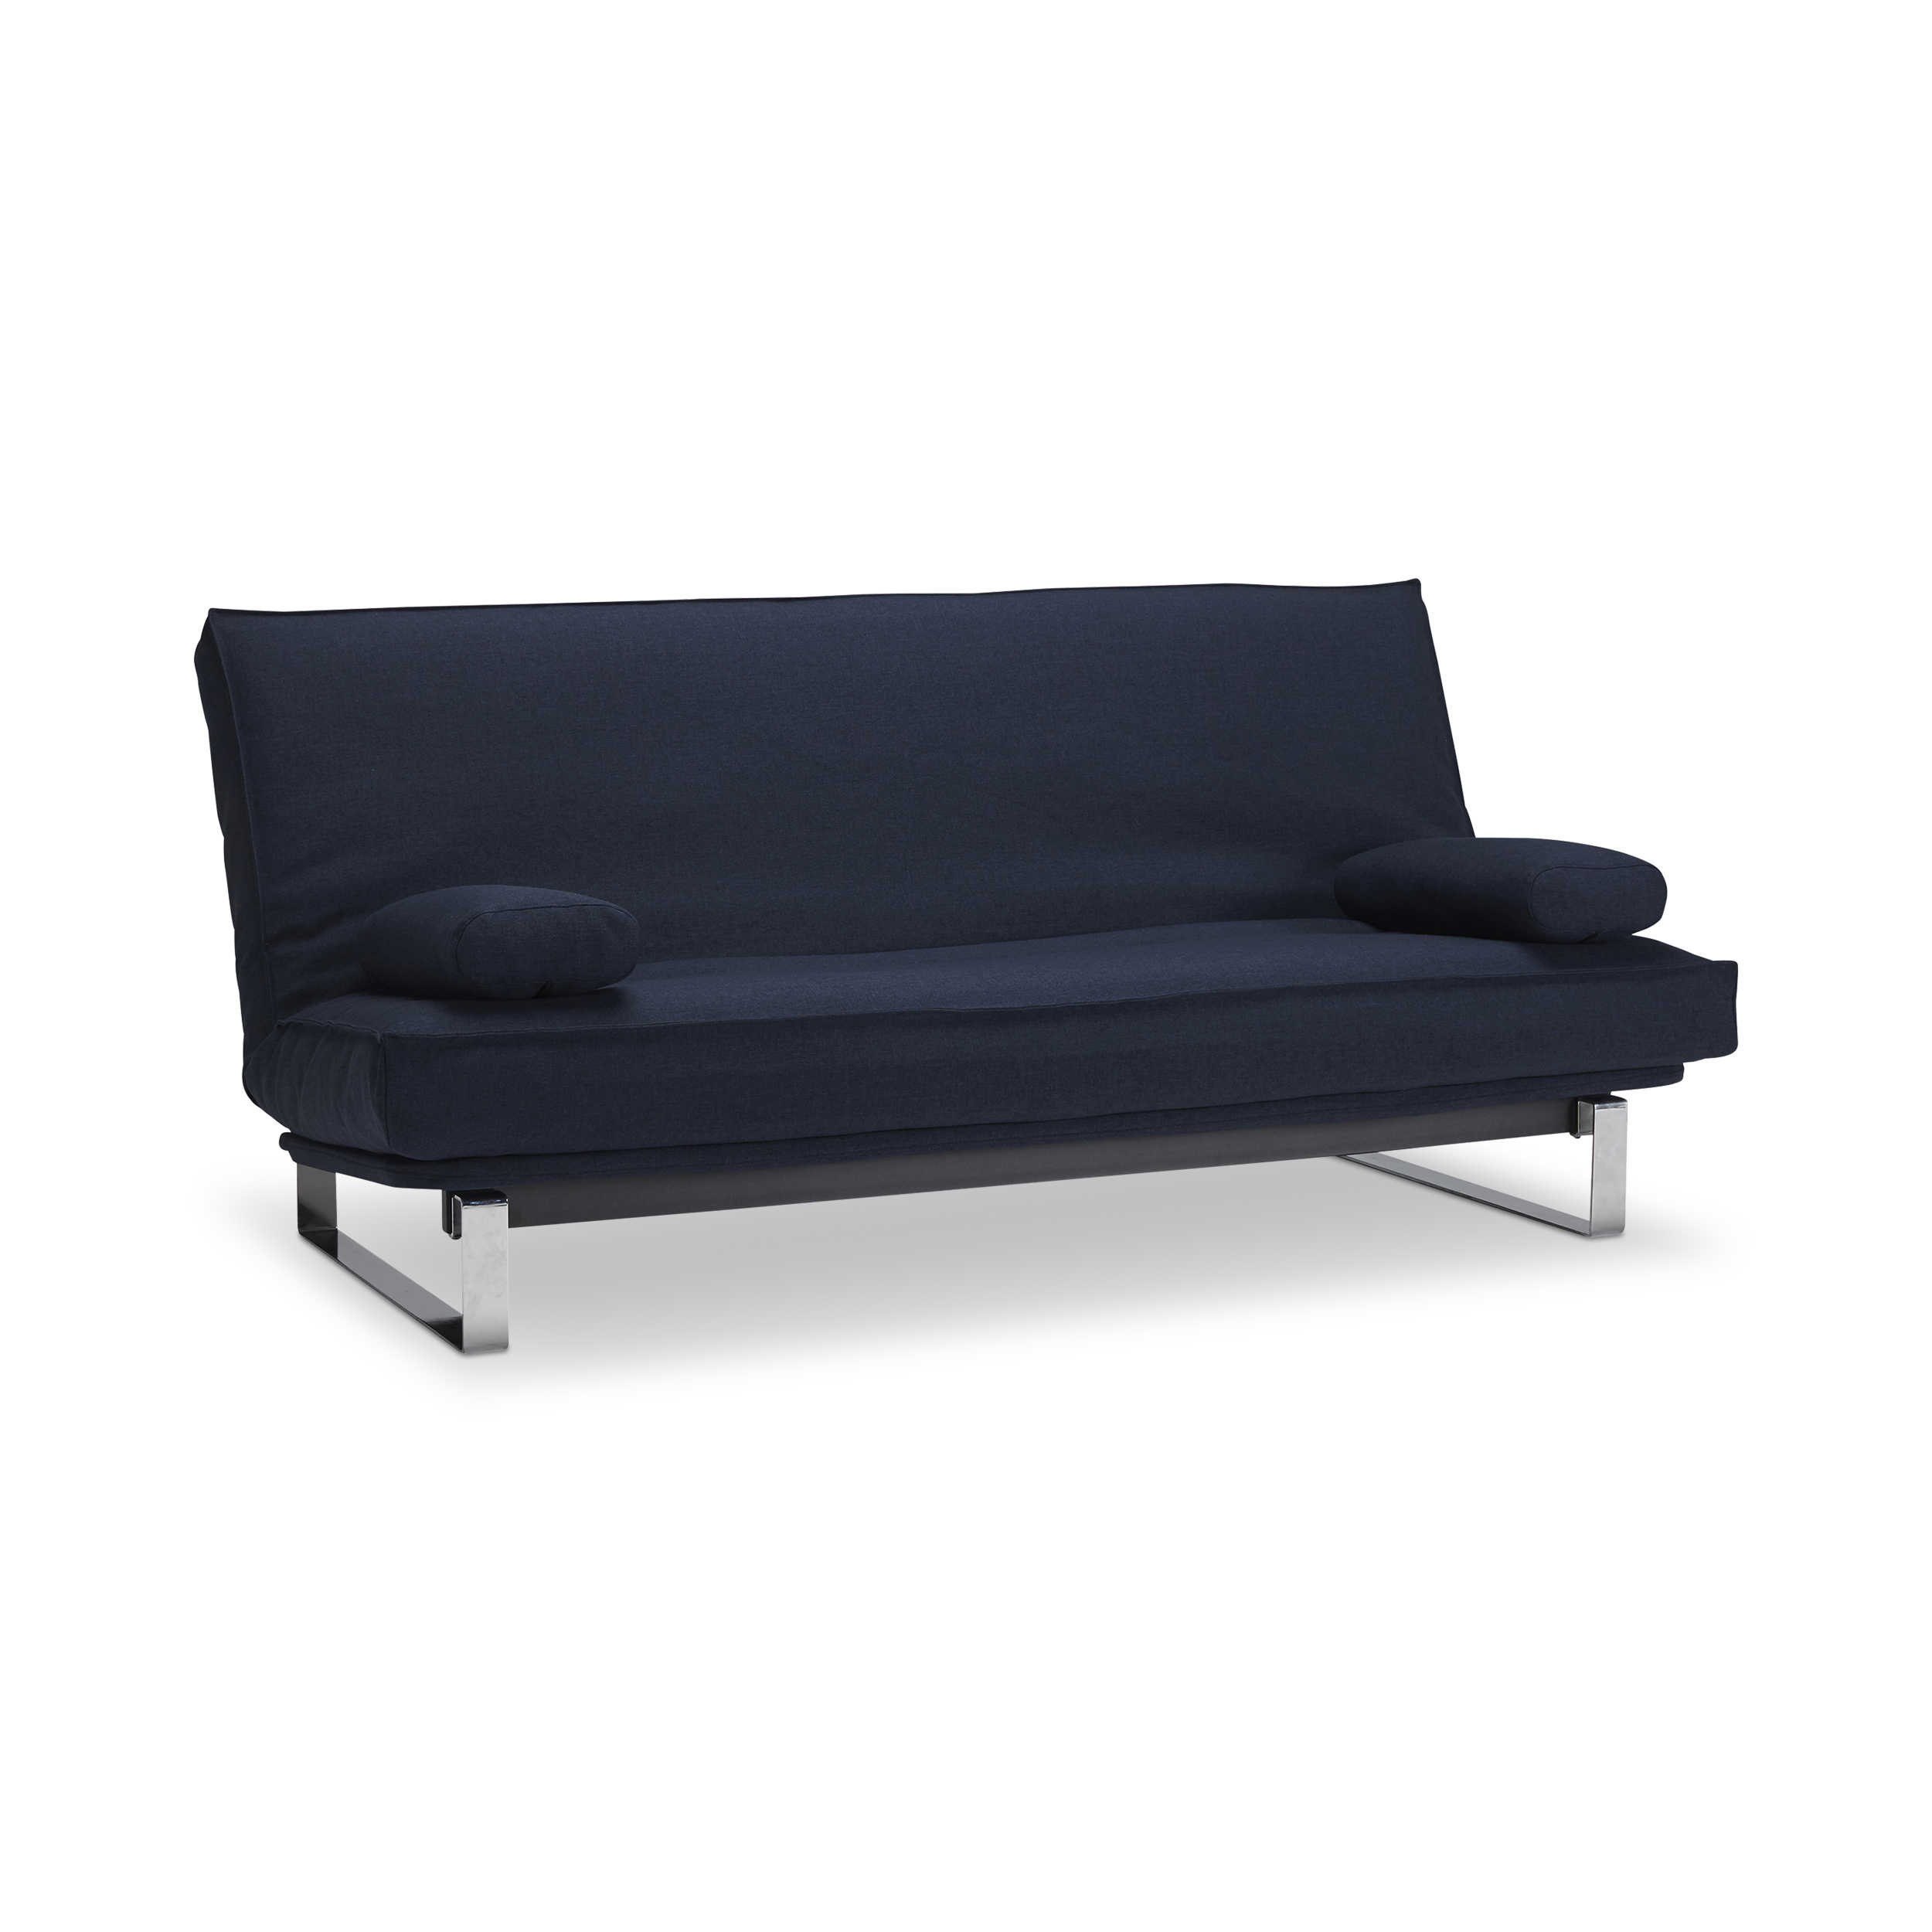 innovation schlafsofa minimum blau stoff online kaufen bei woonio. Black Bedroom Furniture Sets. Home Design Ideas